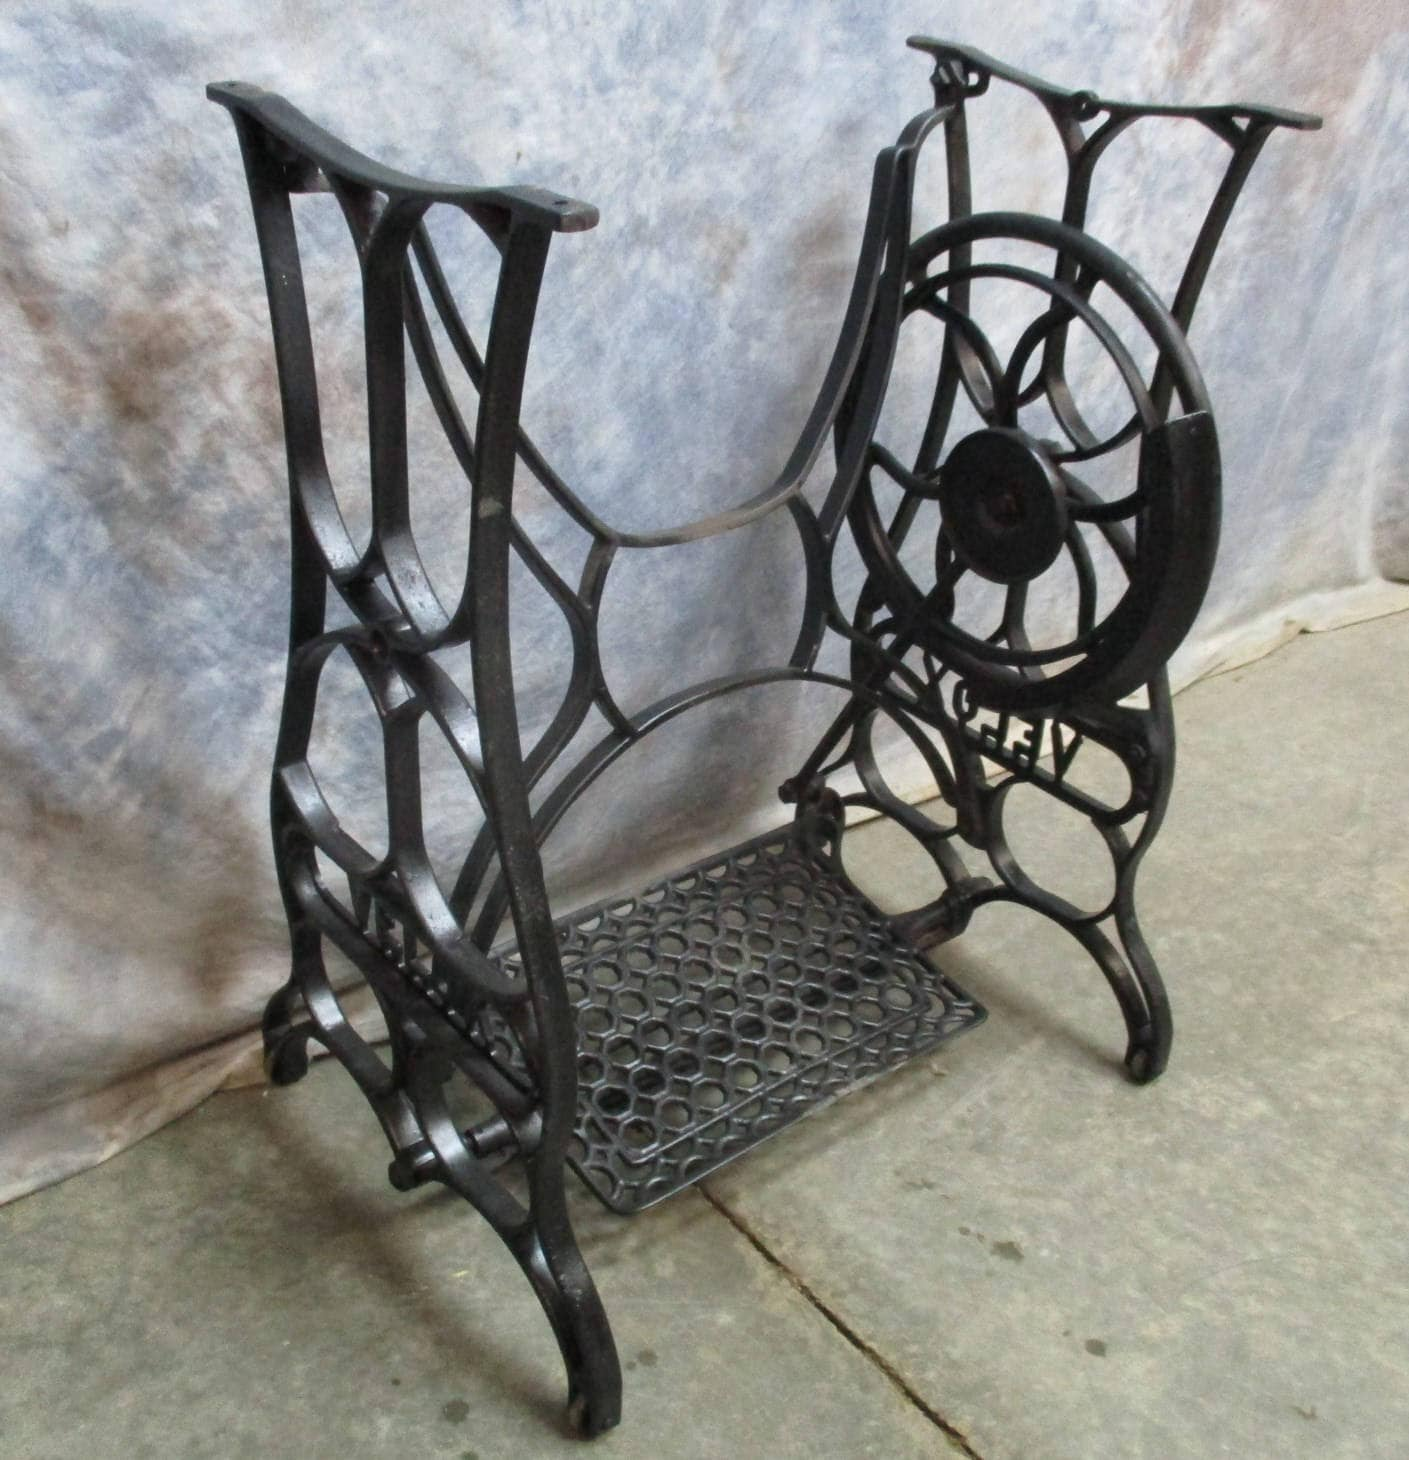 industrial age furniture. Sold By TheOldGrainery Industrial Age Furniture R